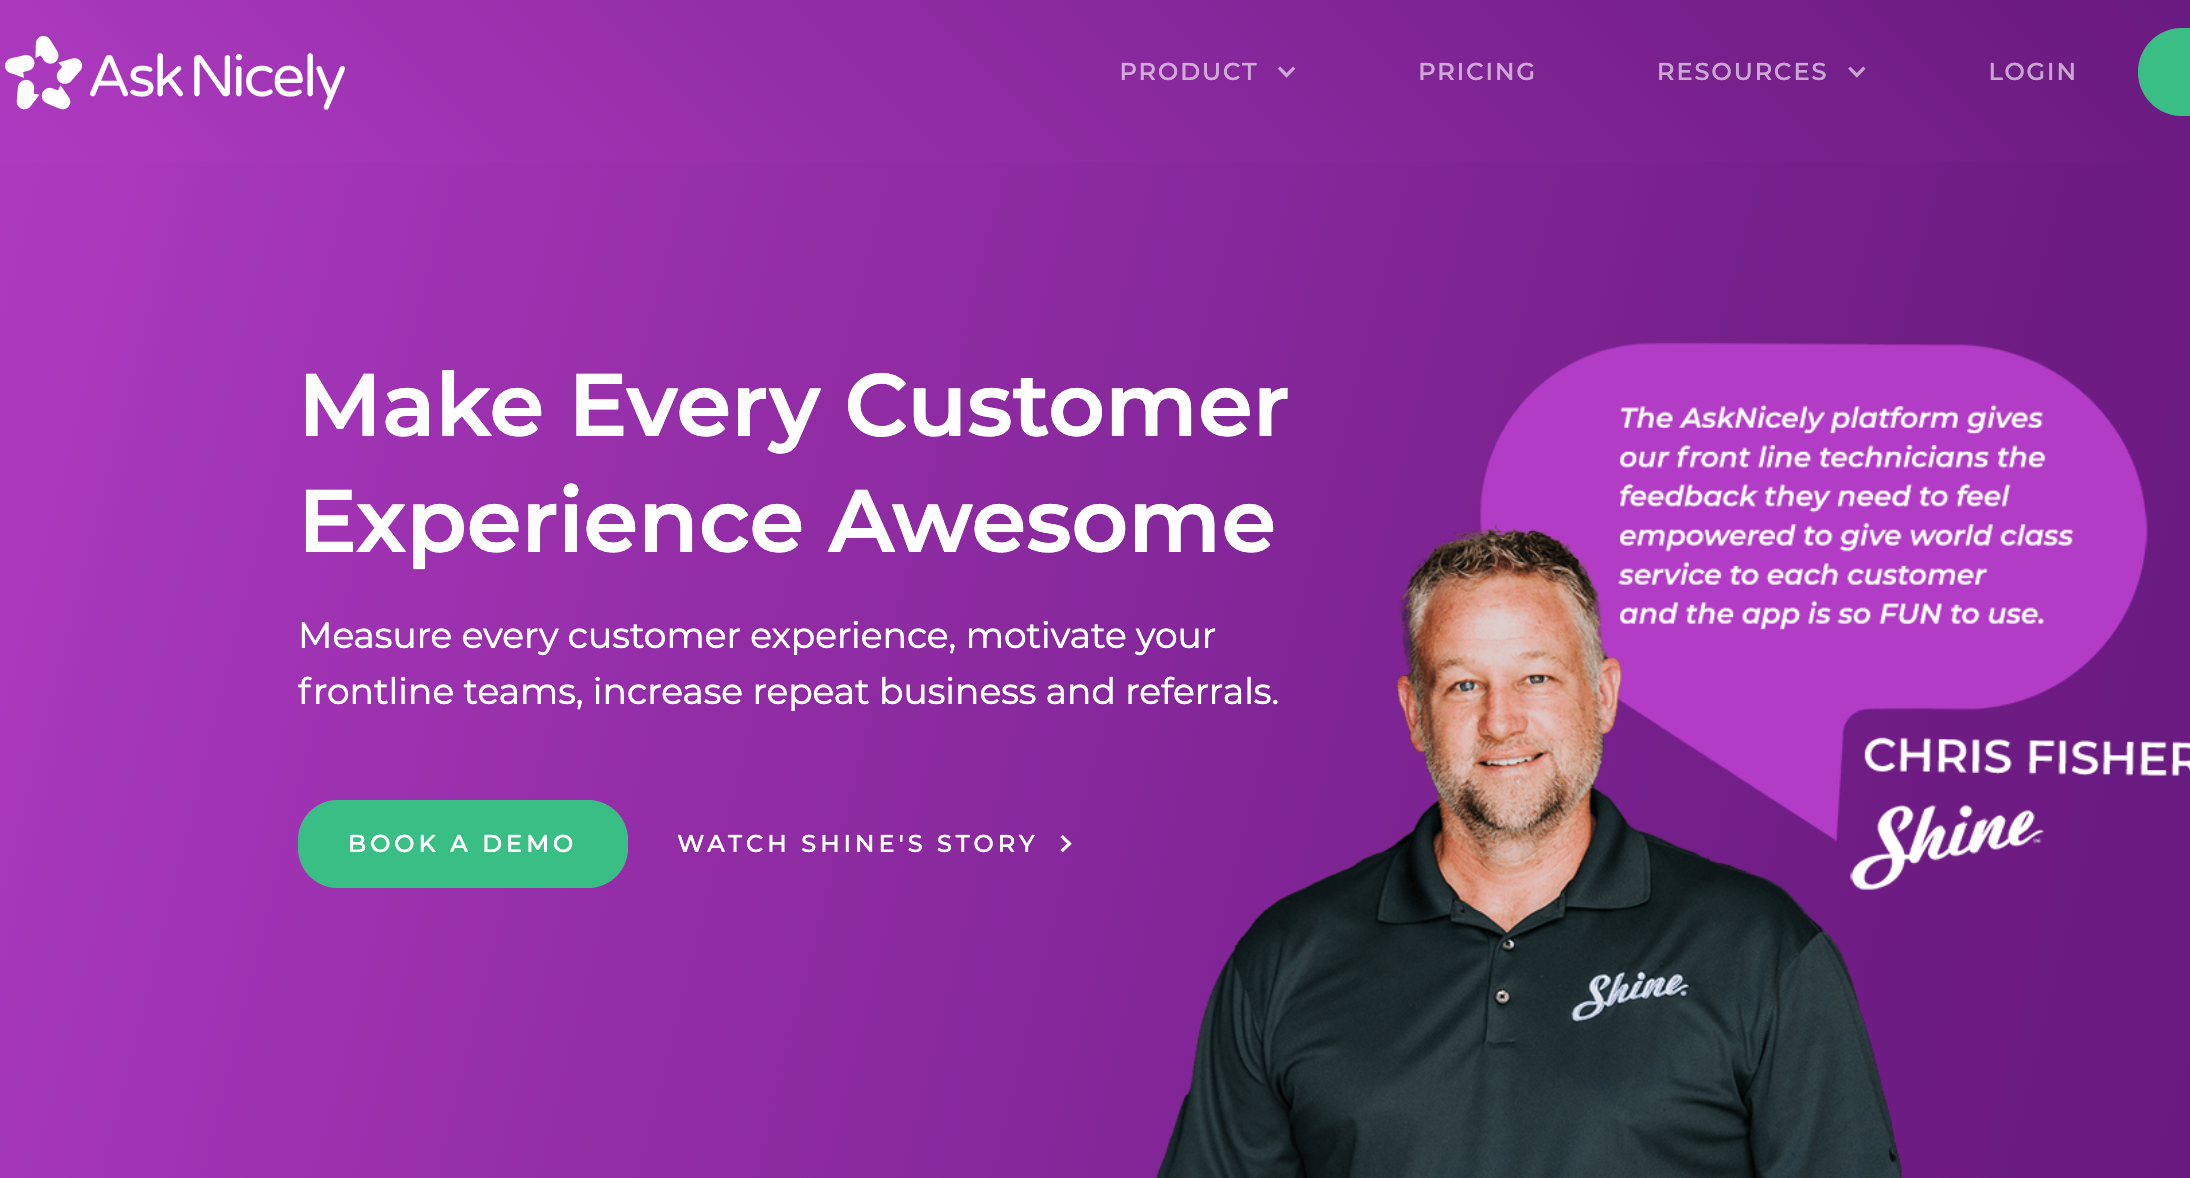 AskNicely gets you real-time customer feedback that can be used to drive customer retention and referrals.